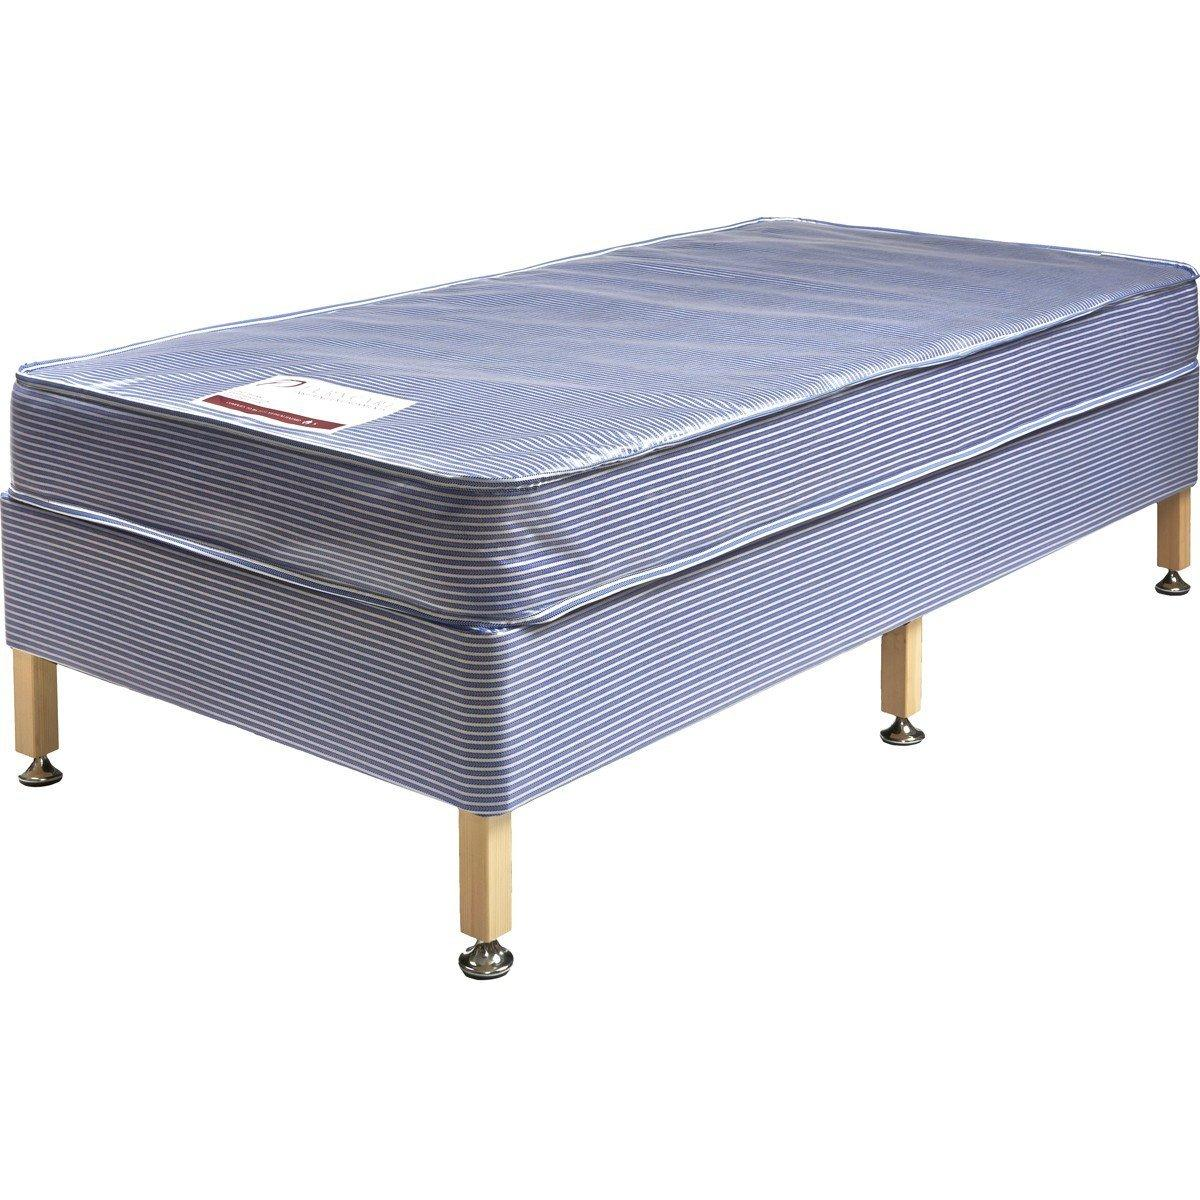 Verna Bed Base - Single (Water resistant PVC)-0